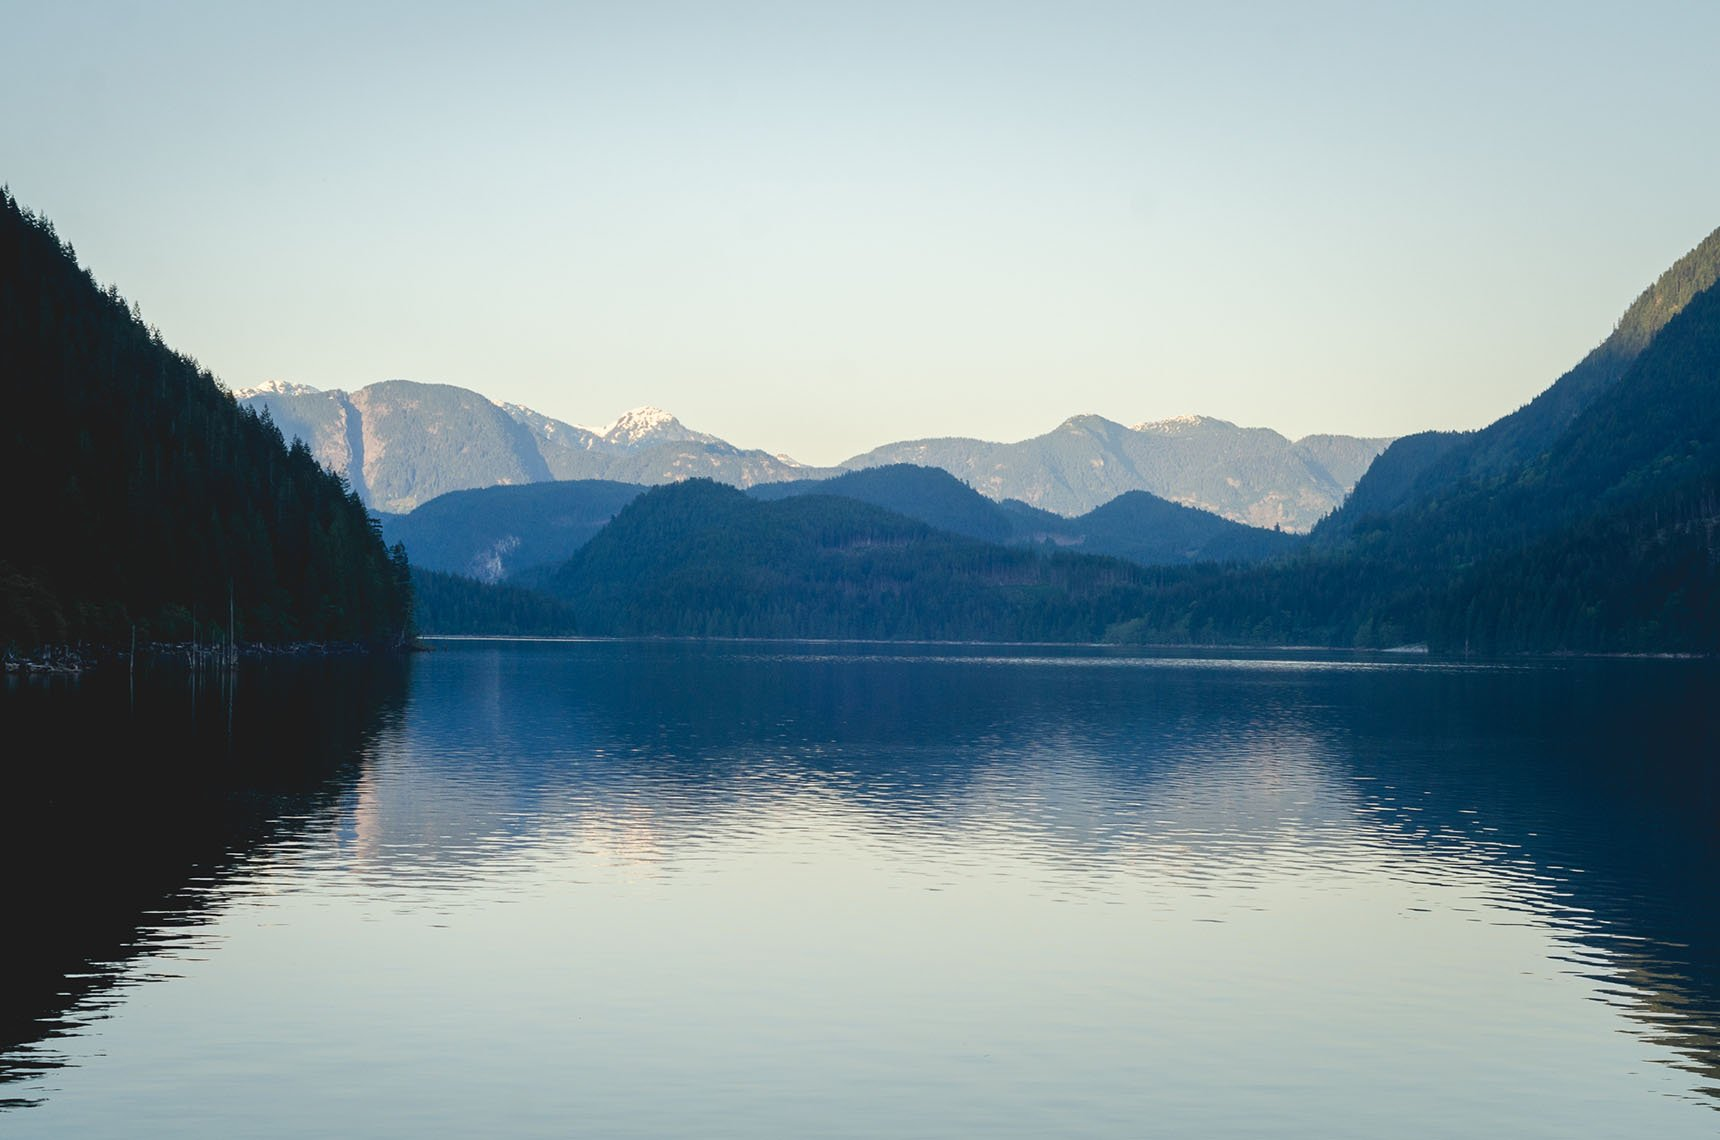 Alouette Lake after sunset.